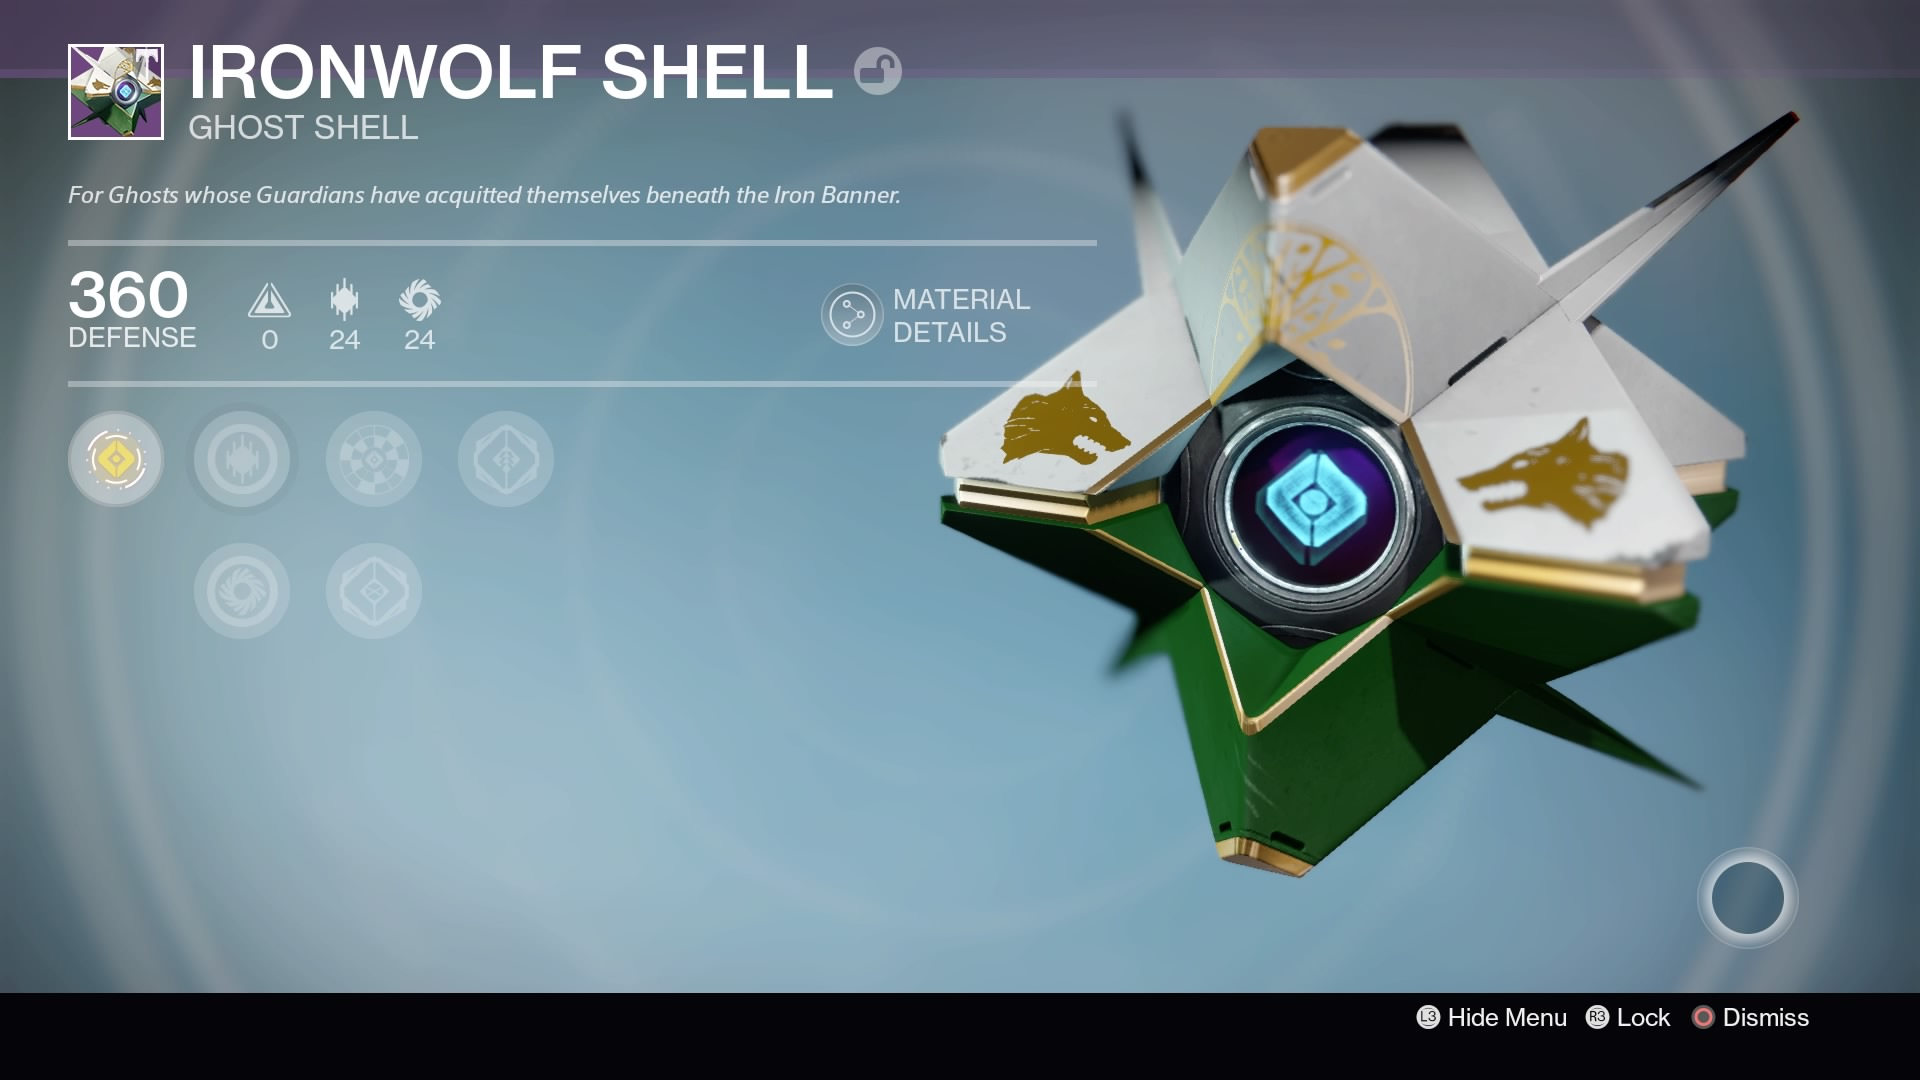 Ironwolf Shell